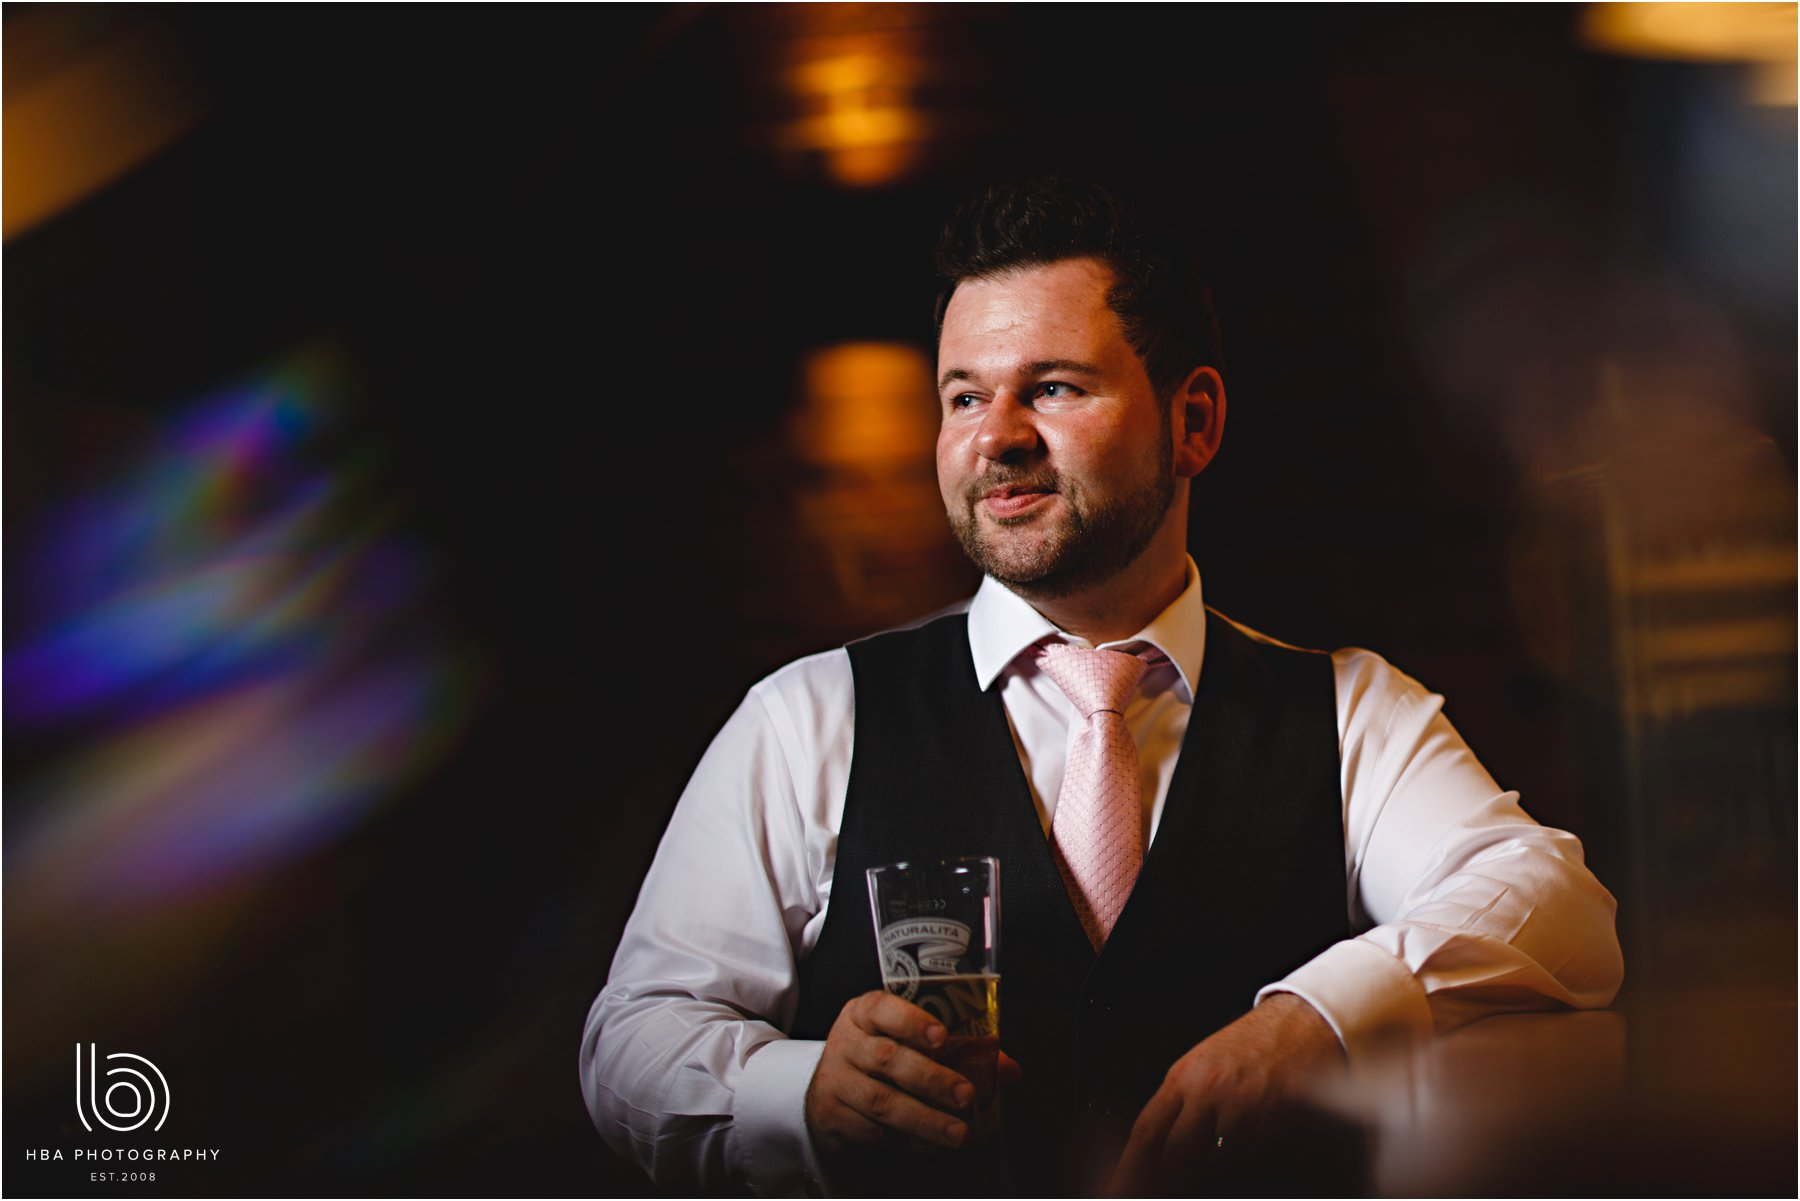 the groom at the bar